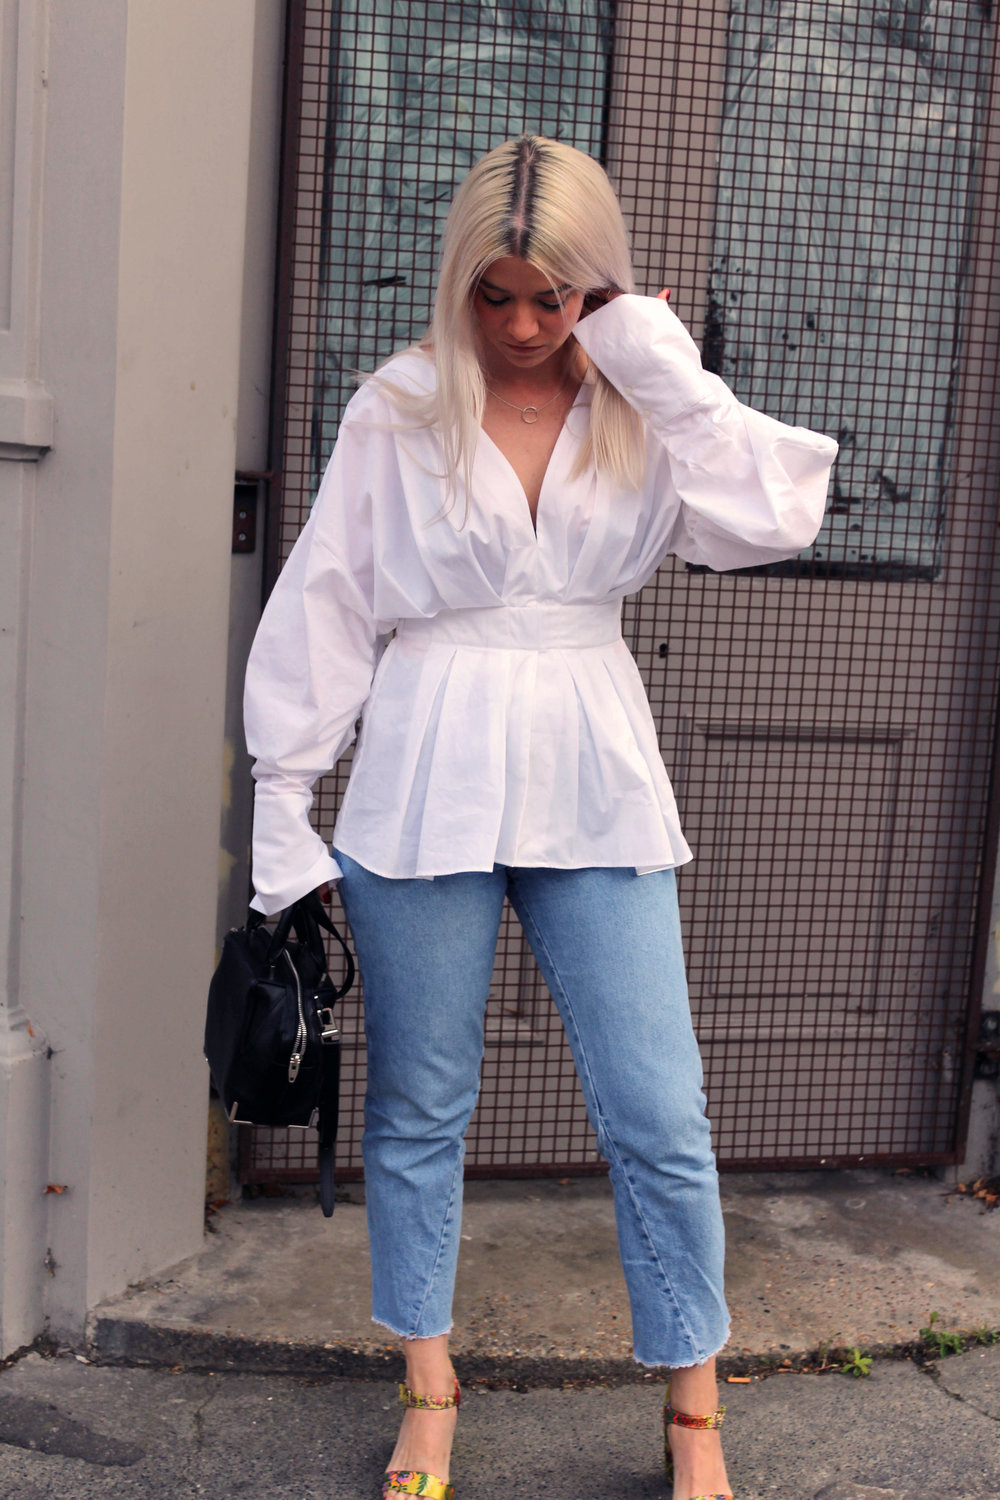 white shirt, topshop jeans, oriental sandals, white blonde hair, northern magpie, joey taylor 4